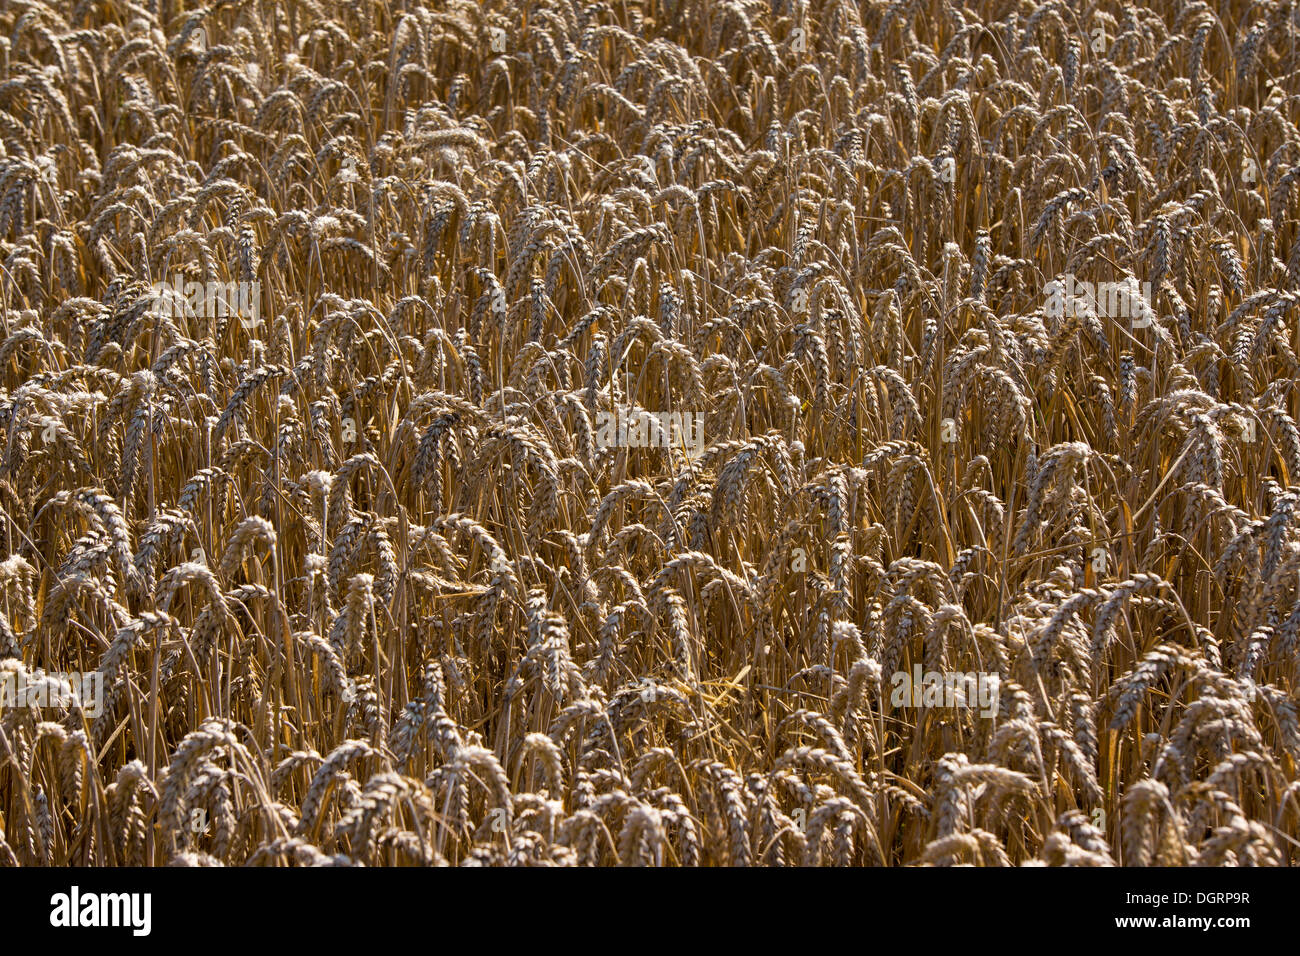 Wheat field, cornfield, Lengfeld, Otzberg, Hesse, Germany - Stock Image